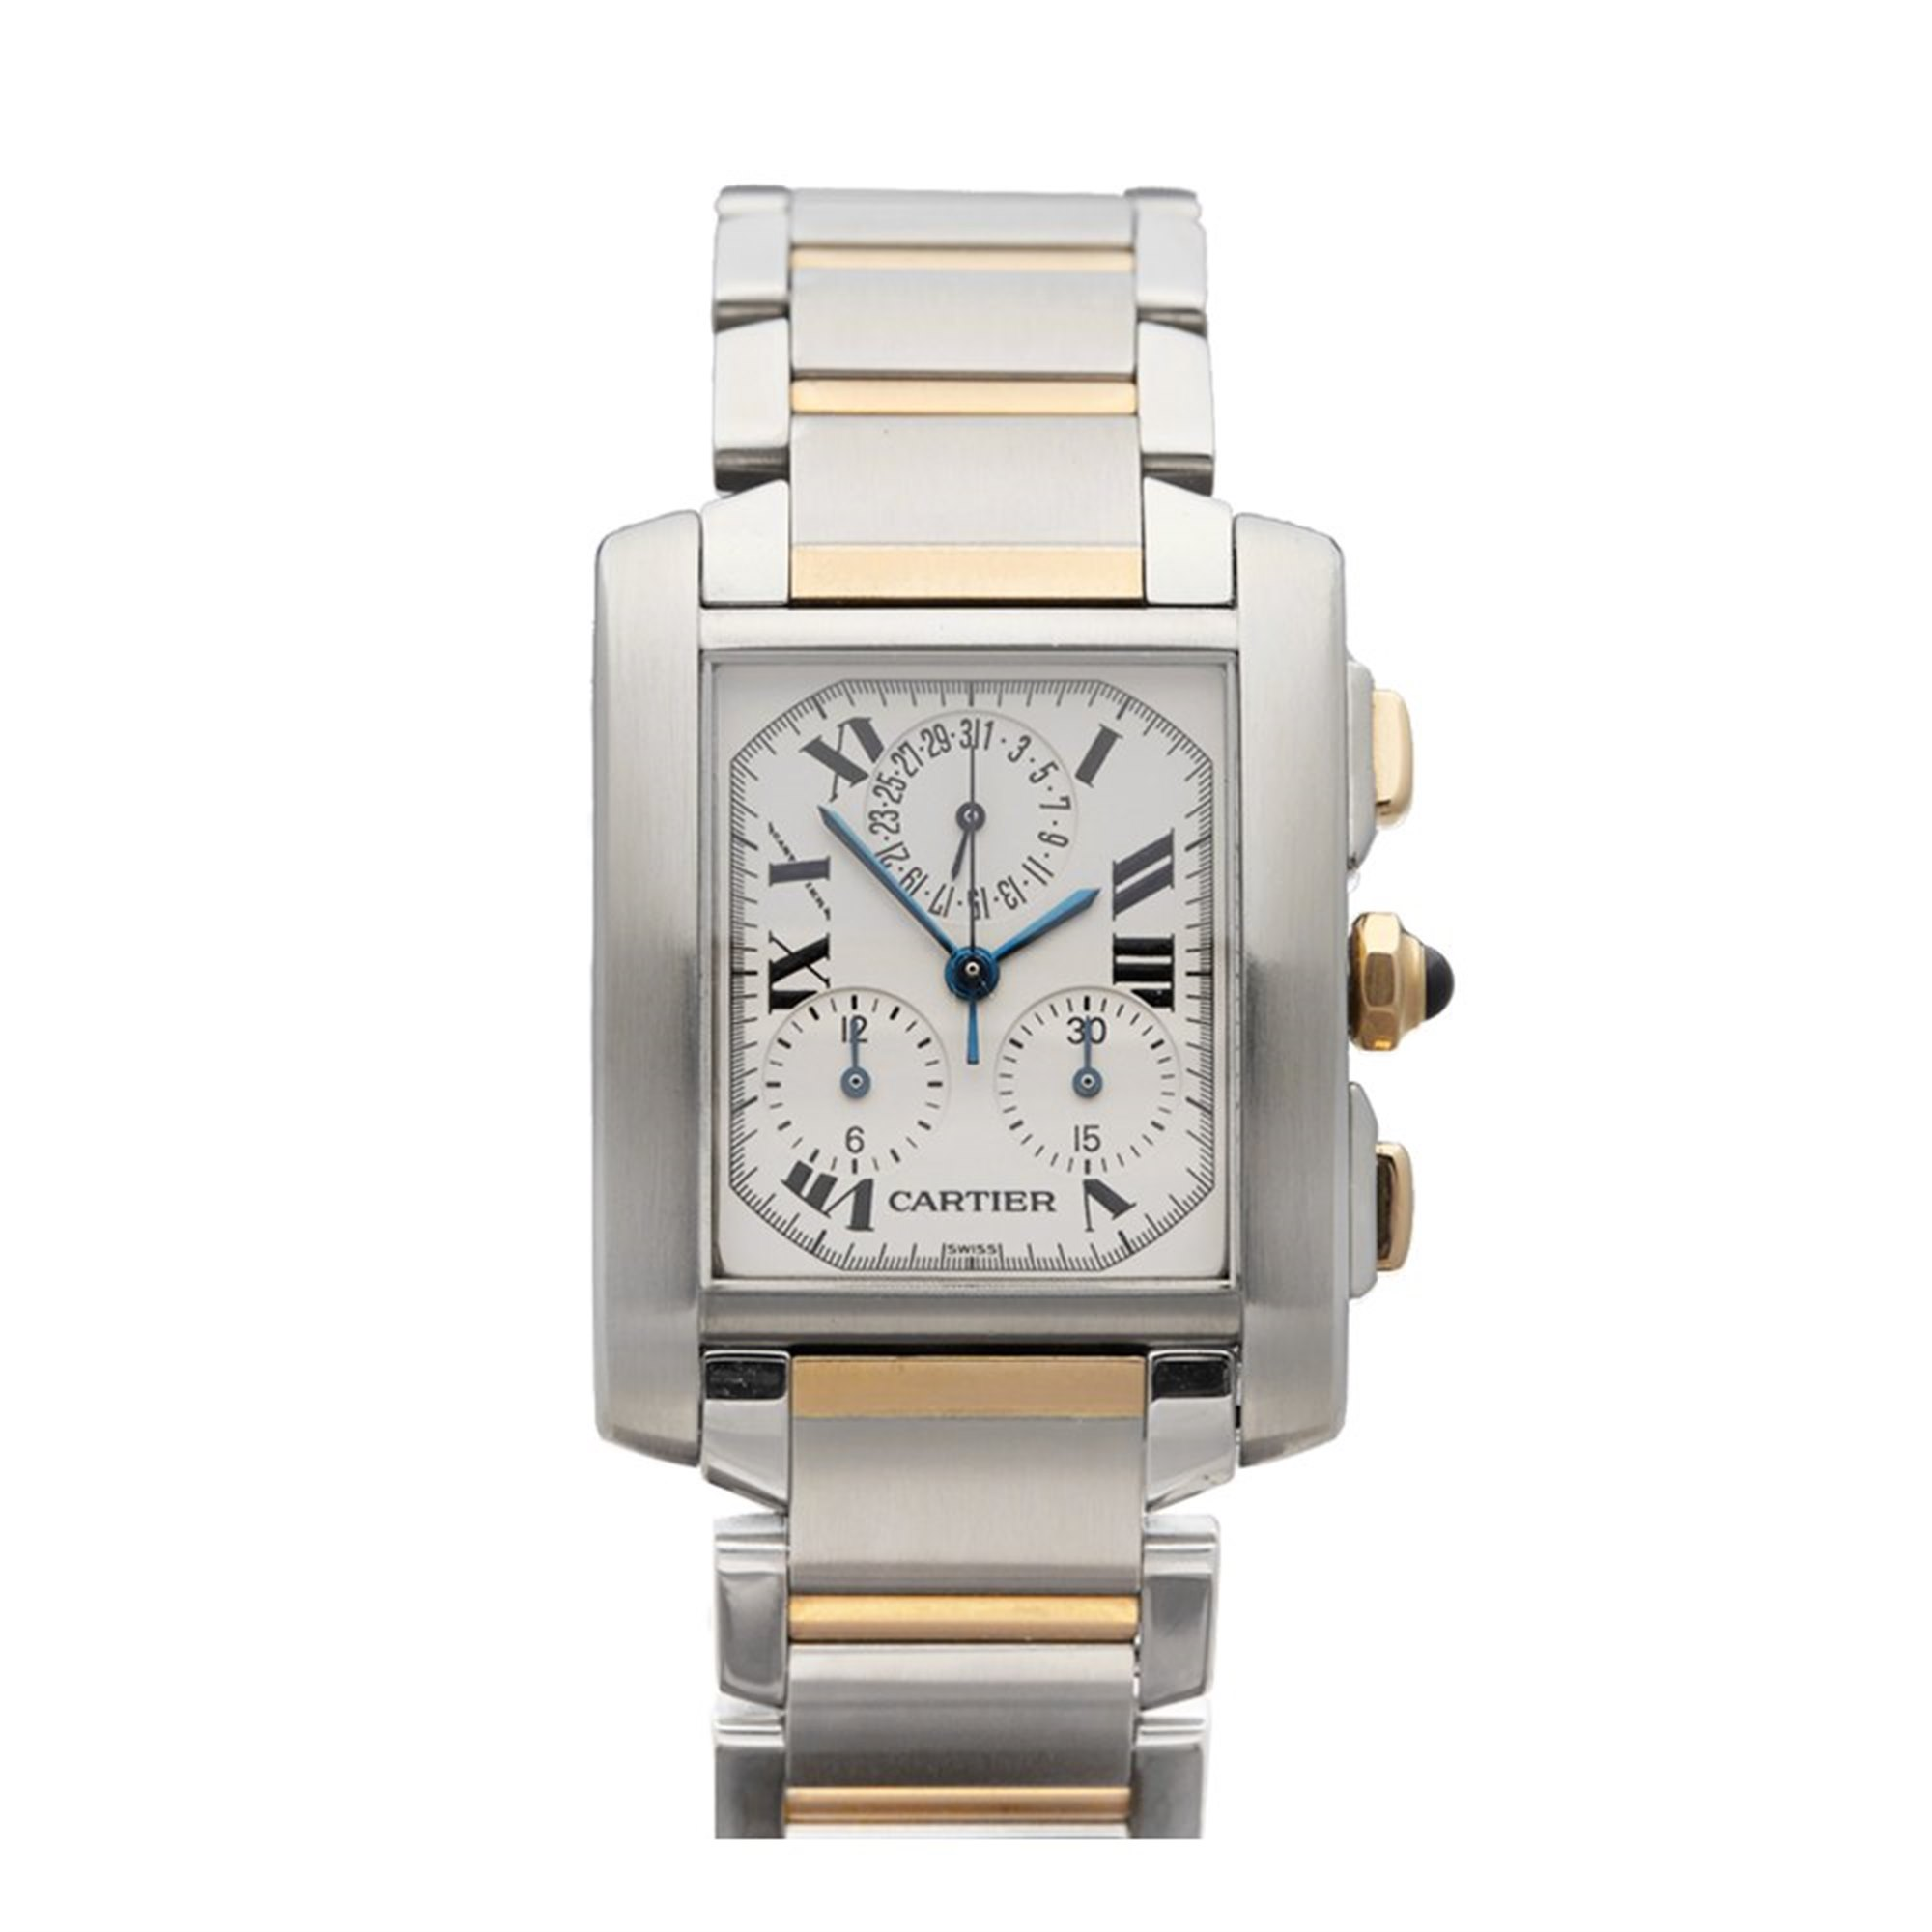 Cartier Tank Francaise Chronoreflex 18K Stainless Steel & Yellow Gold W51004Q4 or 2303